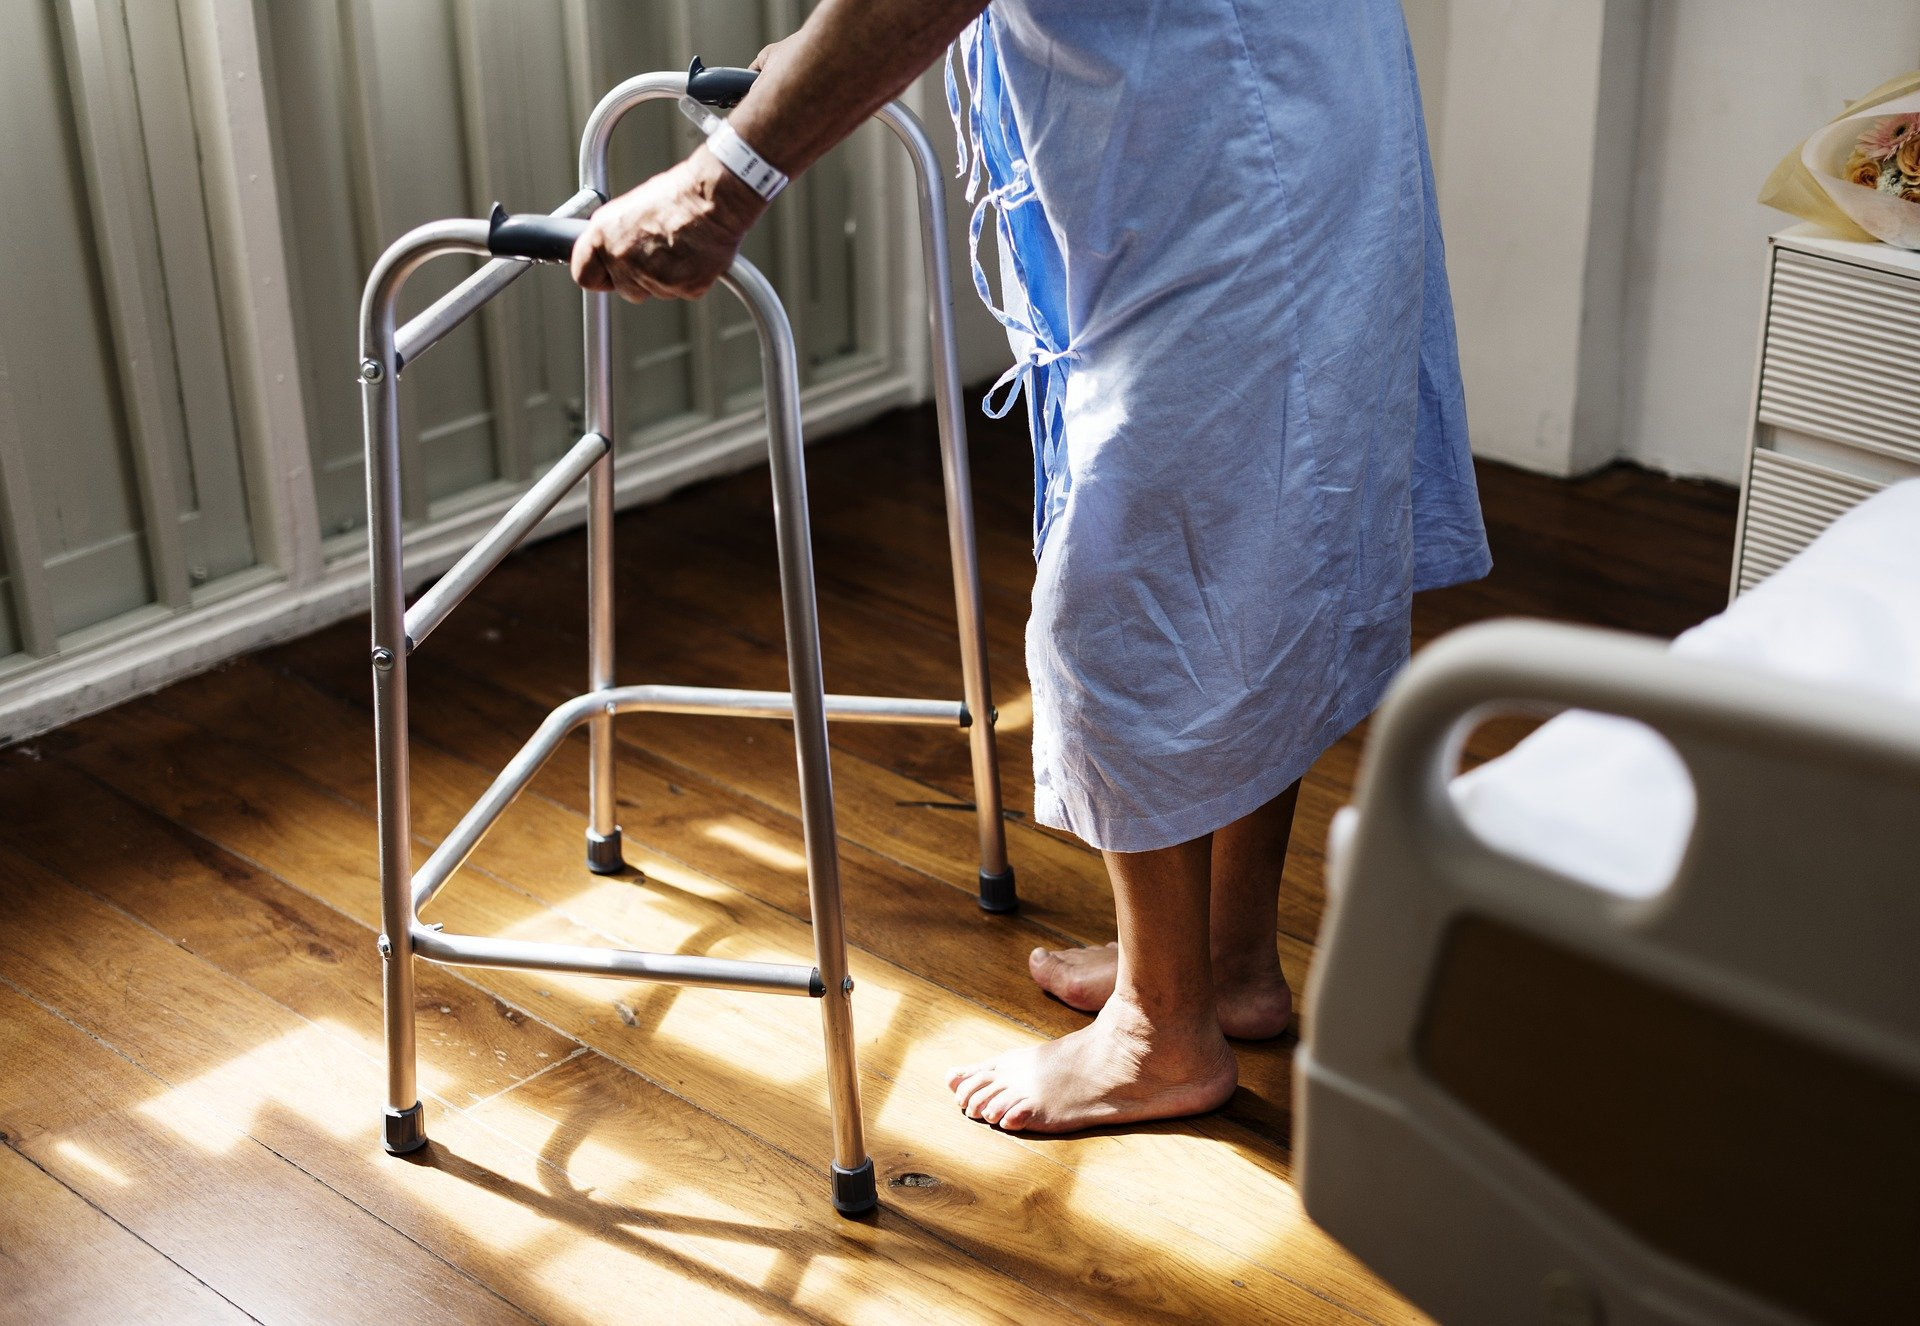 Senior citizens are specially vulnerable to abuse in South Carolina. I Image: Pixabay.